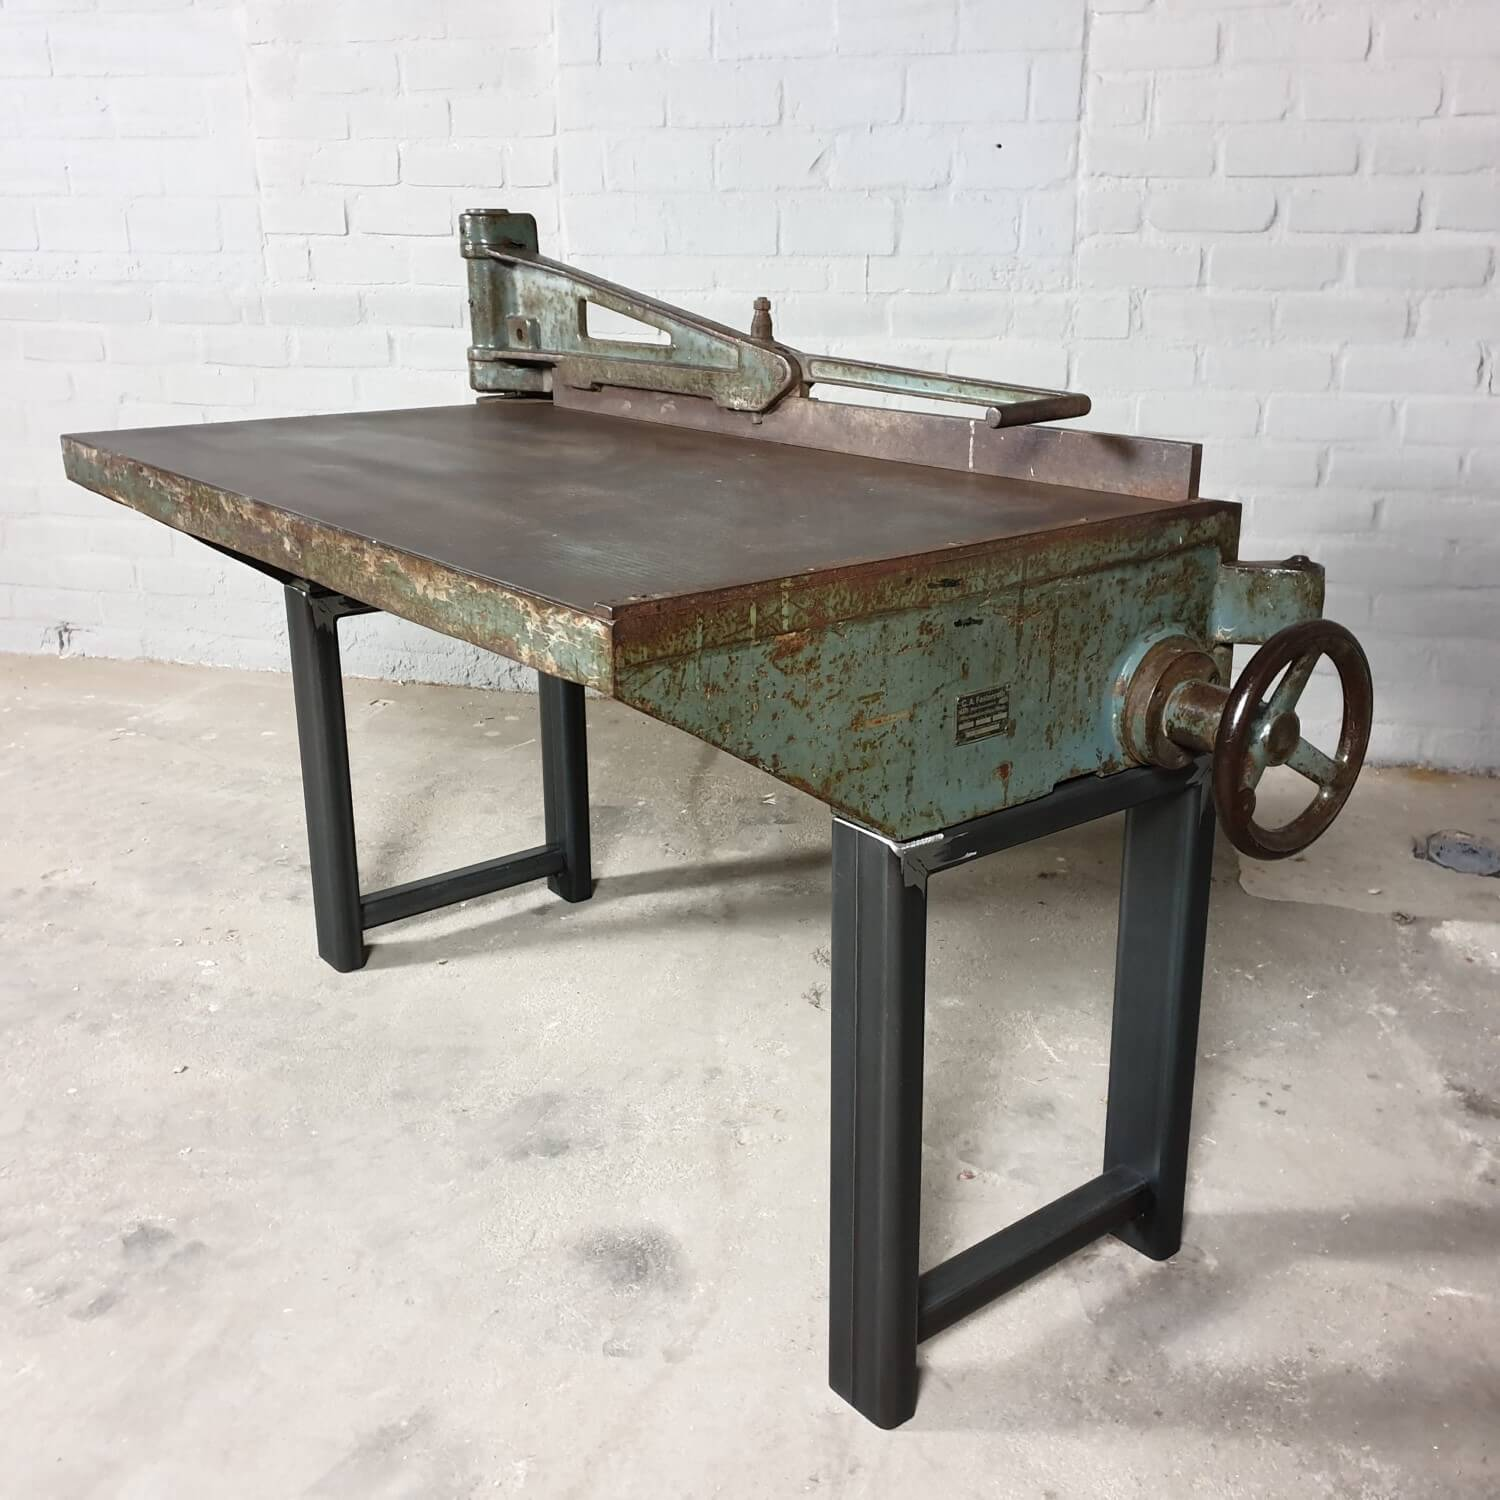 Vintage Fotos Vintage Workbench From Old Industrial Machine - Dt69